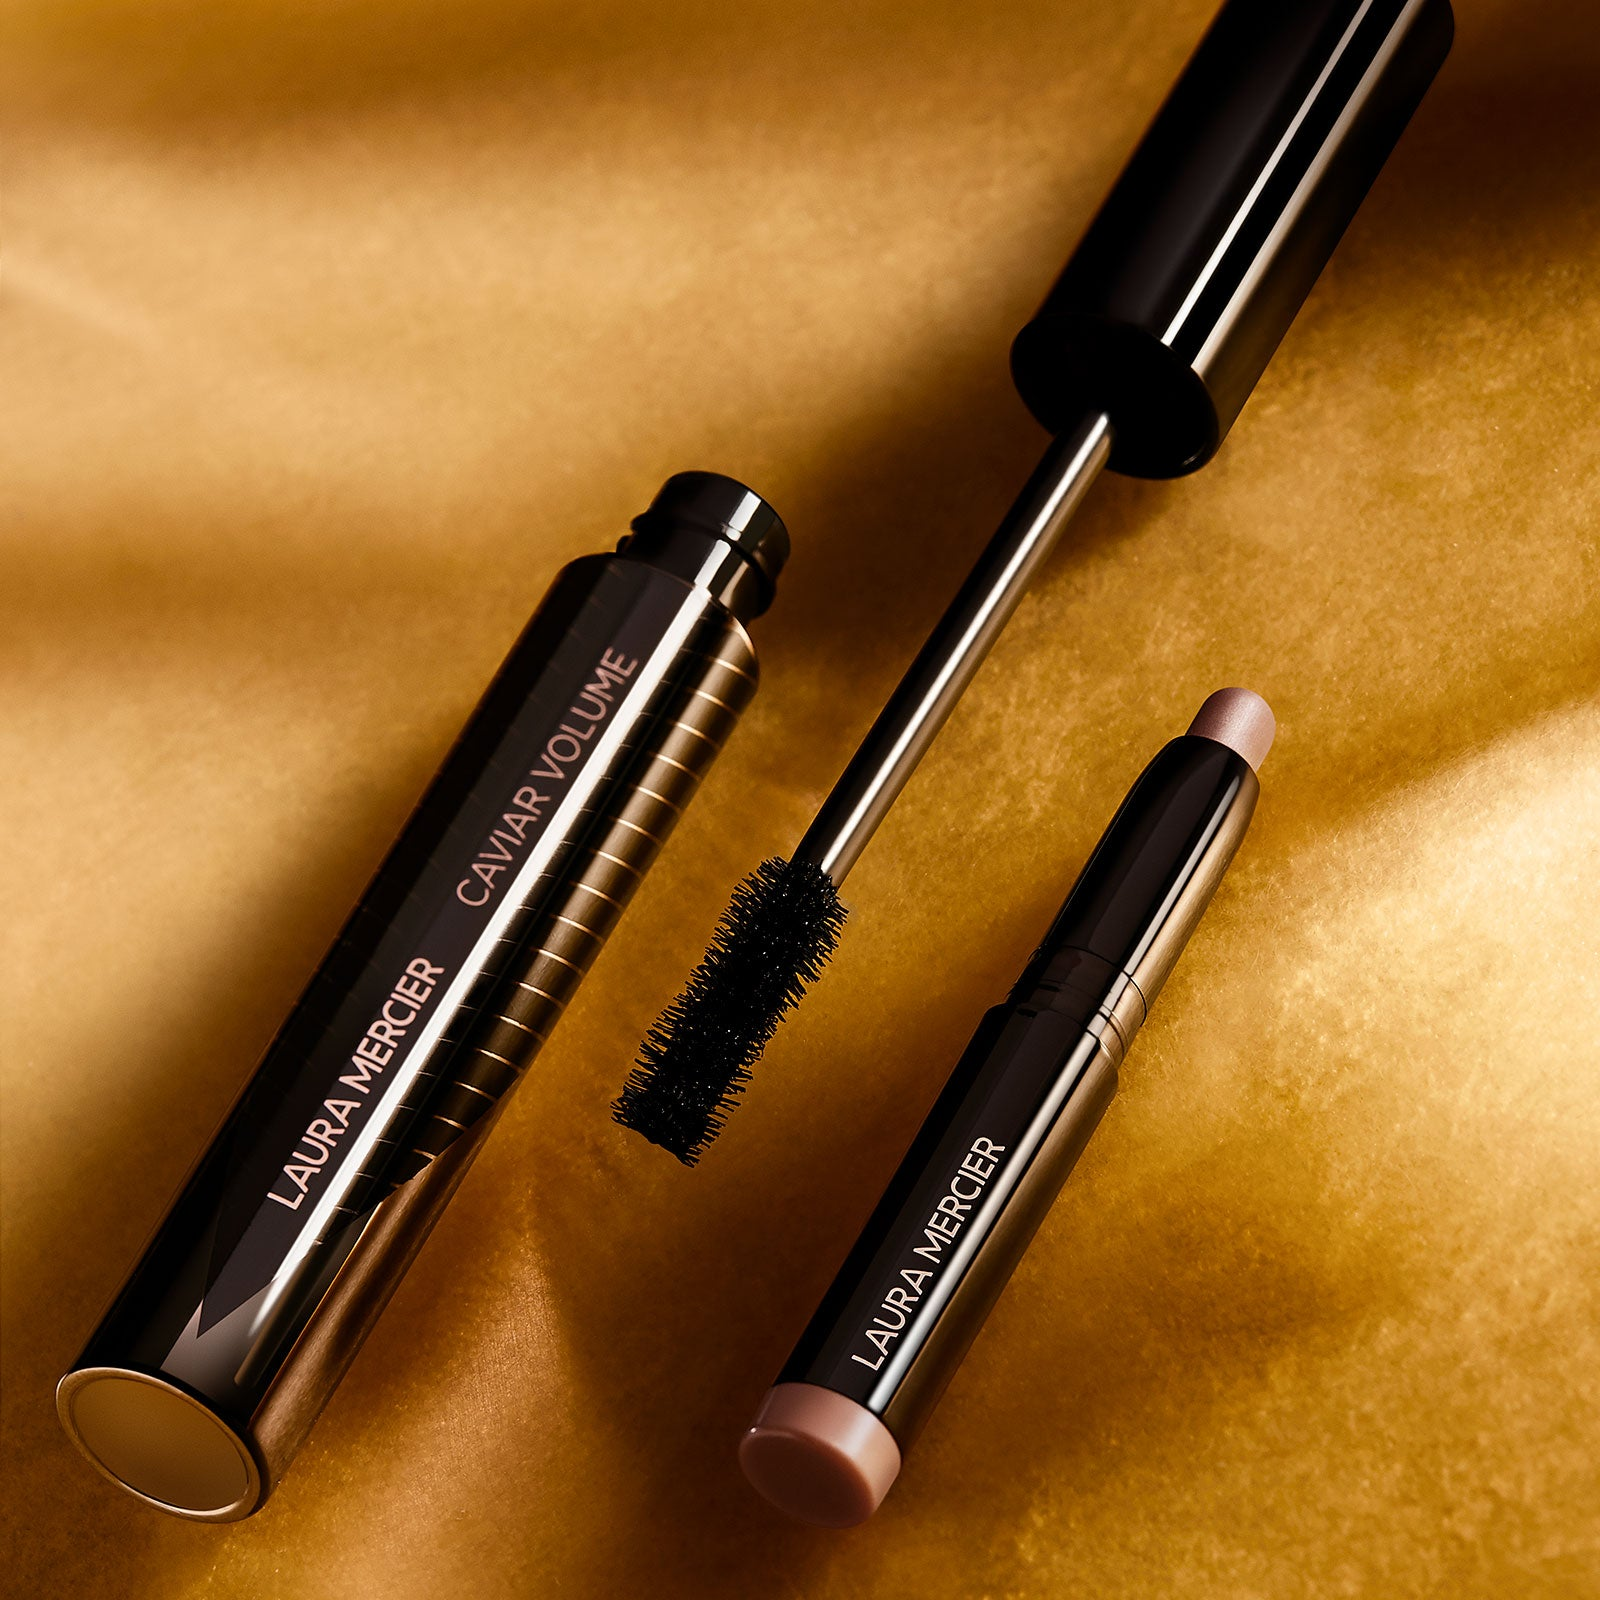 Laura Mercier Caviar Duet Shadow & Mascara Set